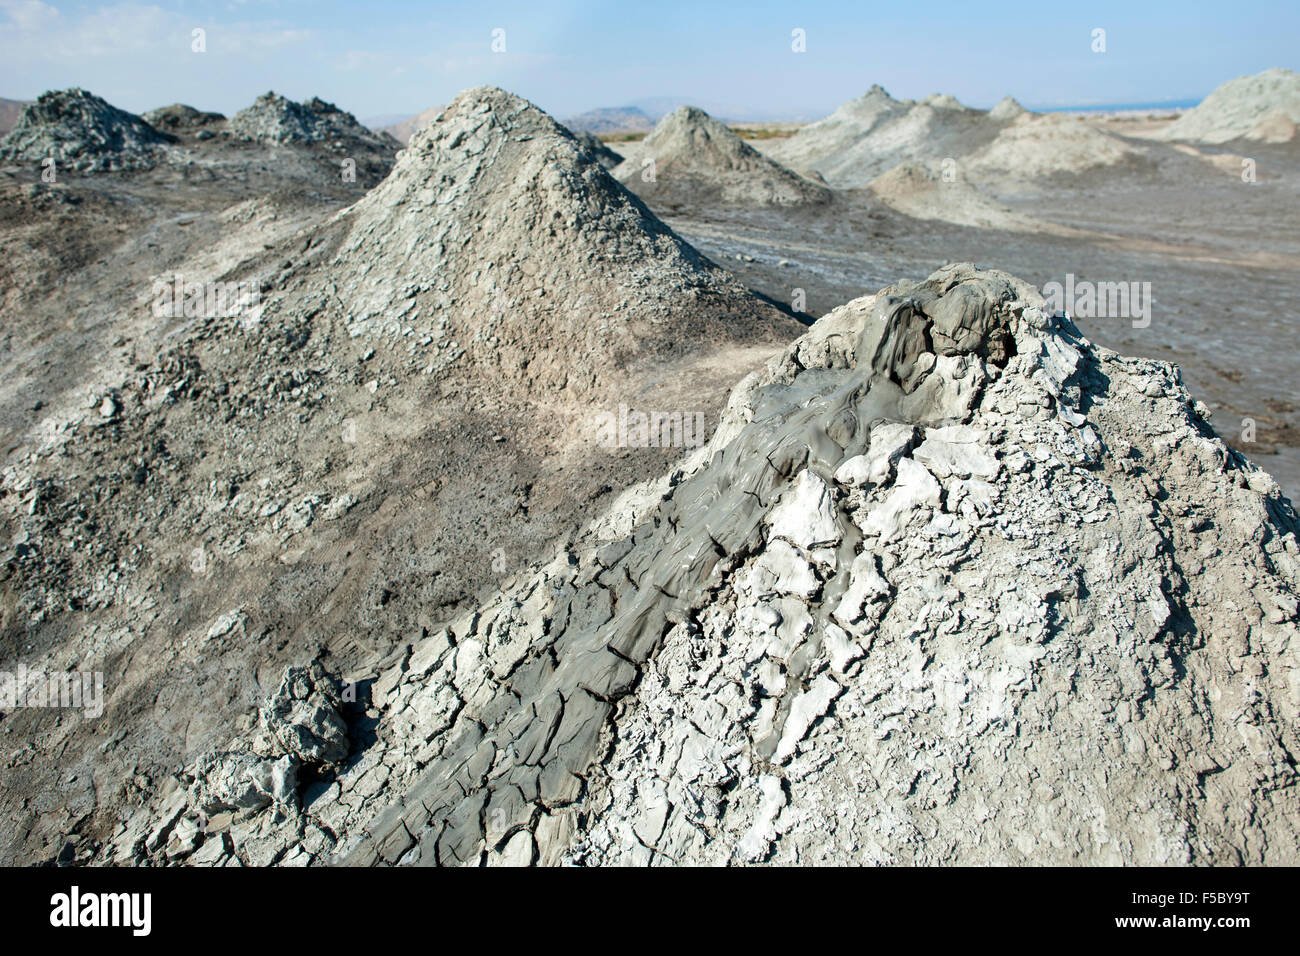 Mud volcanoes in Gobustan National Park in Azerbaijan. Stock Photo